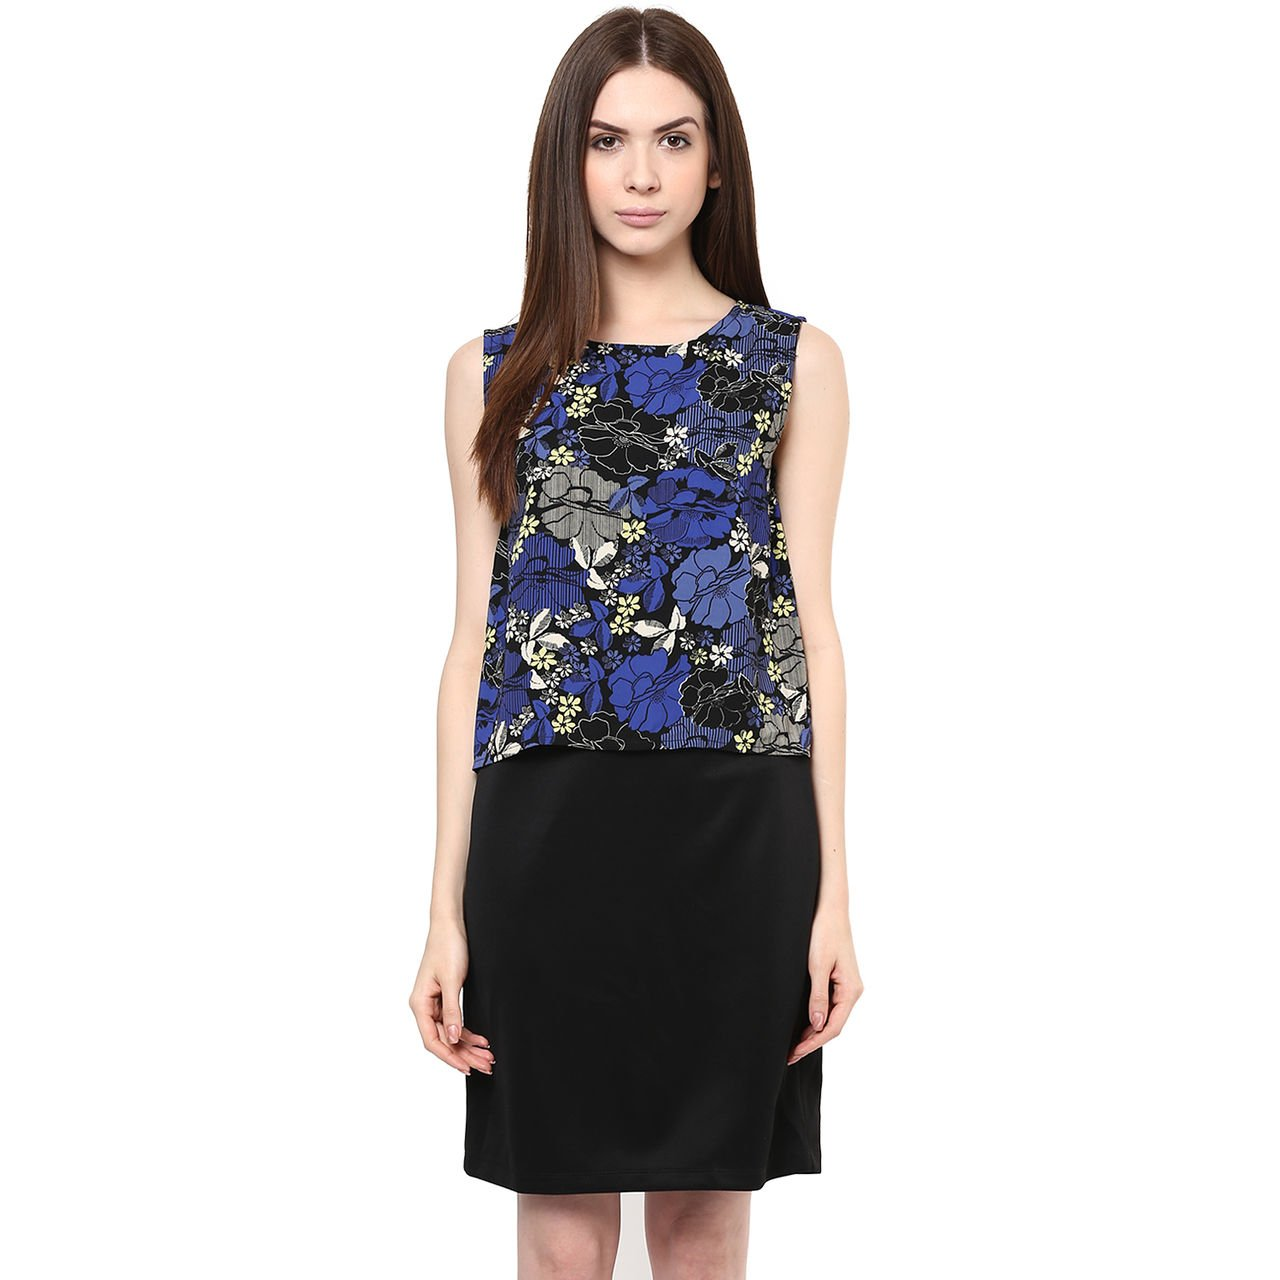 Annabelle By Pantaloons Women's A-Line Dress